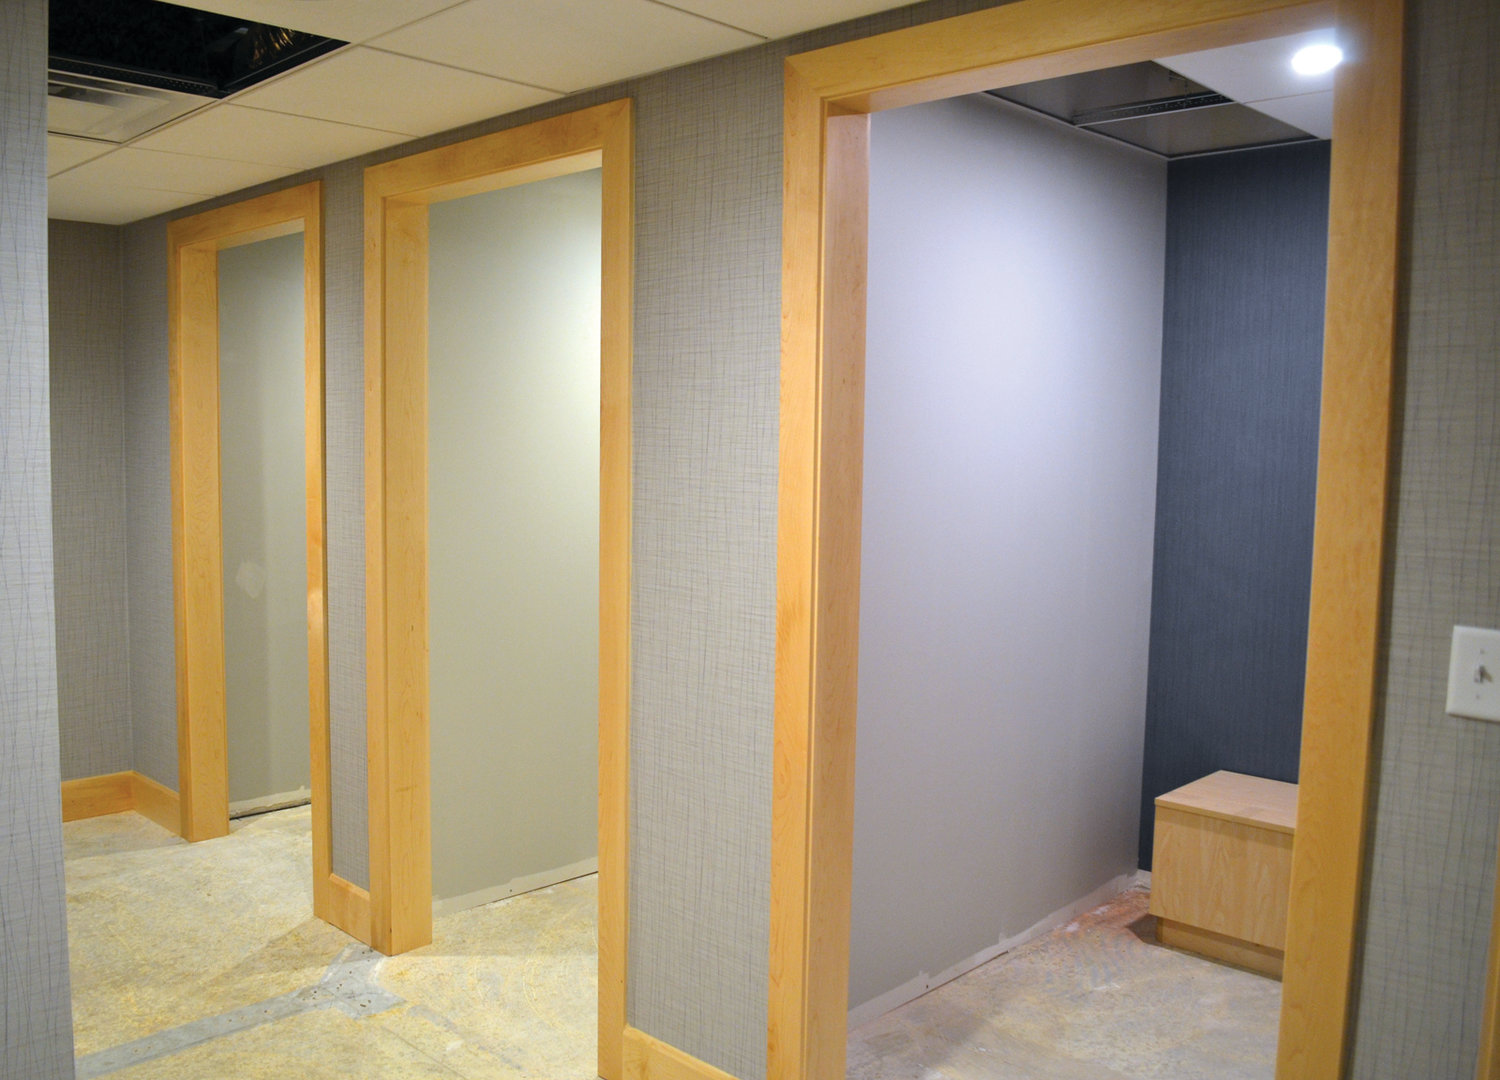 WAY MORE ROOM: These spacious and well-lit changing rooms are just some of the many new additions to RIMI's breast imaging center.